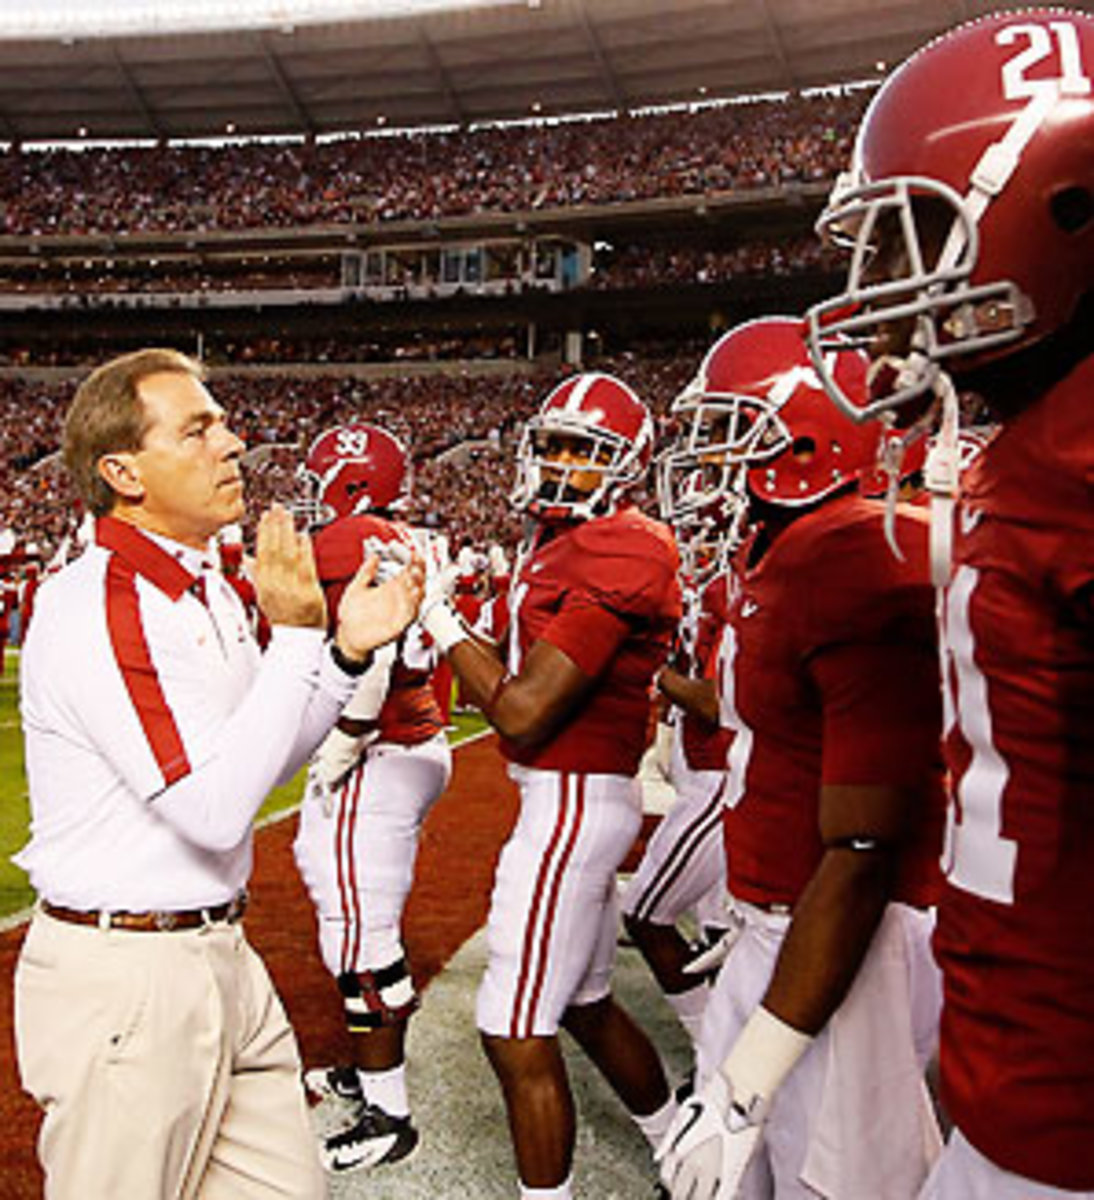 Nick Saban has led Alabama to two BCS titles in three years thanks to the Process, a culmination of all he's learned in the college and NFL ranks.